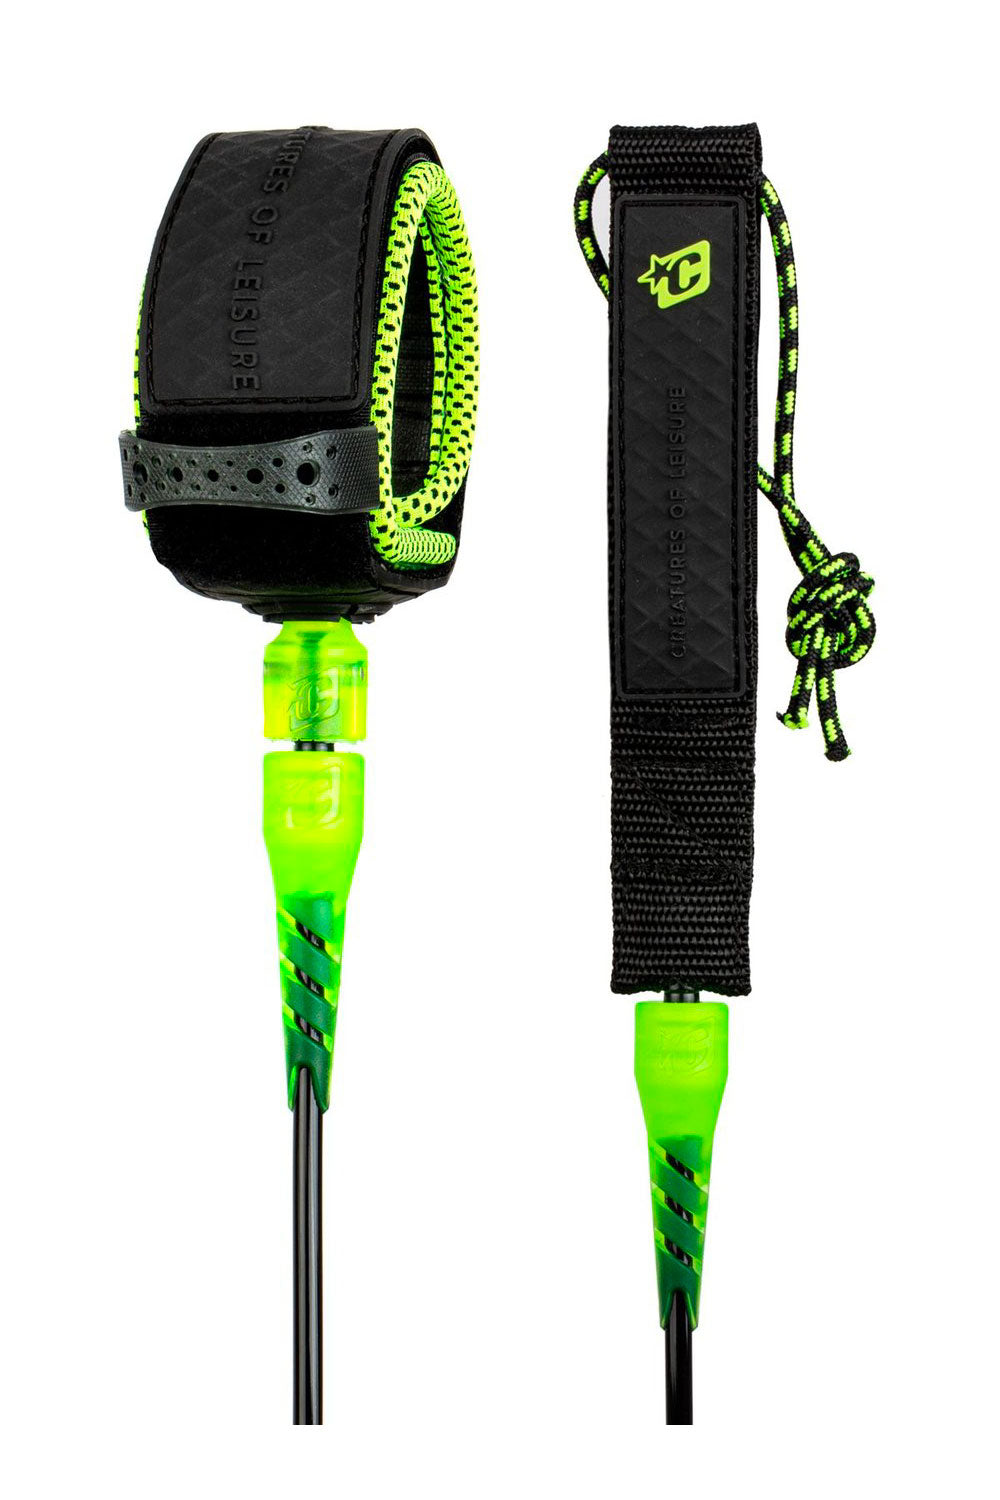 5ft Creatures of Leisure Reliance Grom Lite Leg Rope